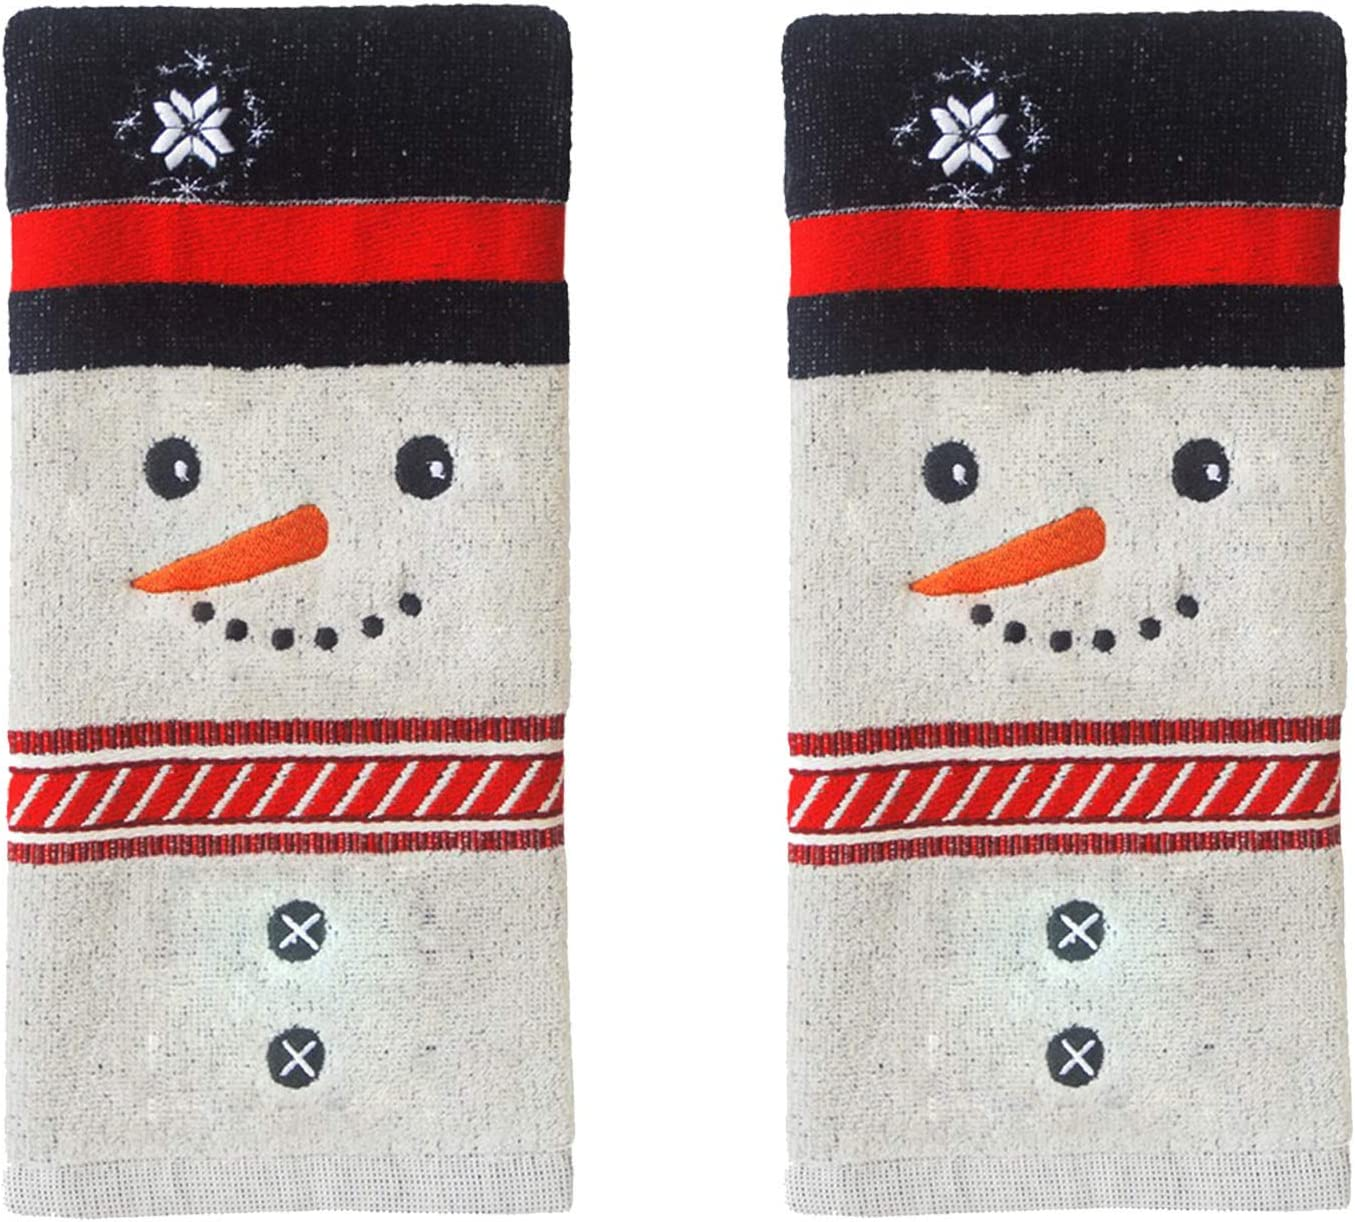 Amazon Com St Nicholas Square Christmas Towels Grey Bath Hand Towel Set Of 2 Snowman Face Decorative Design 25 X 16 Inches For Bathroom Decorating For The Holidays Home Kitchen